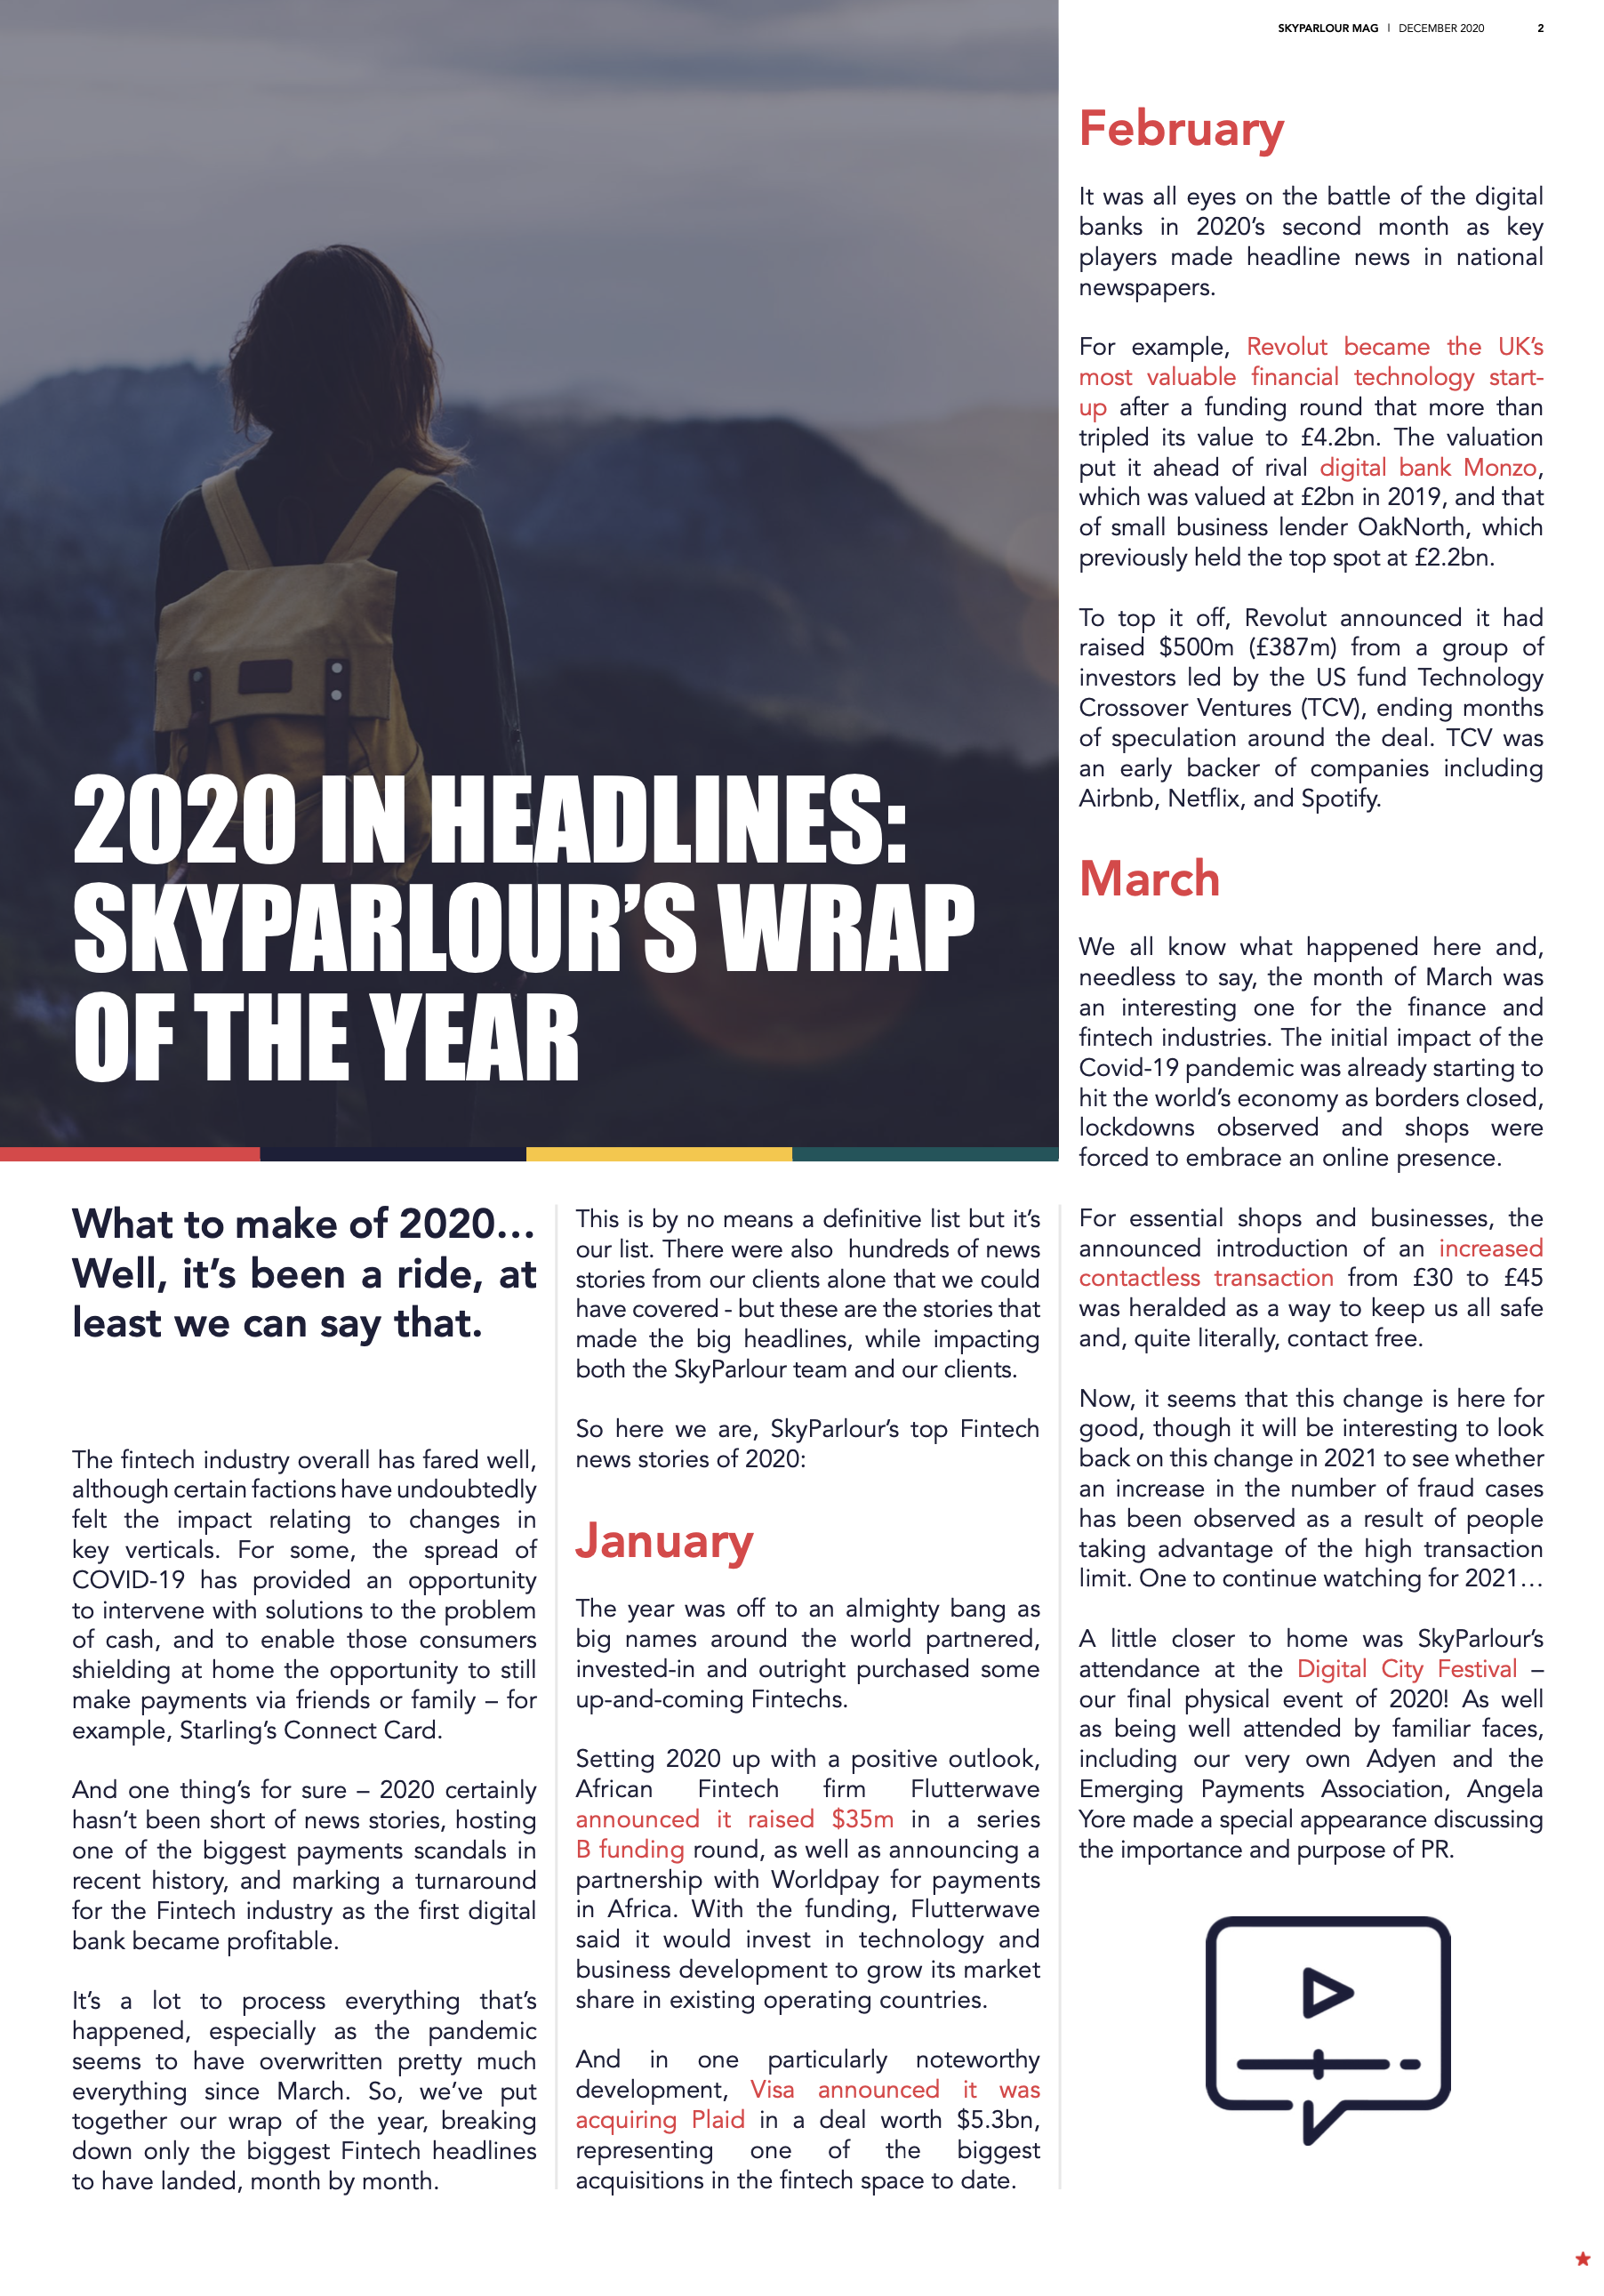 2020 in headlines: SkyParlour's wrap of the year